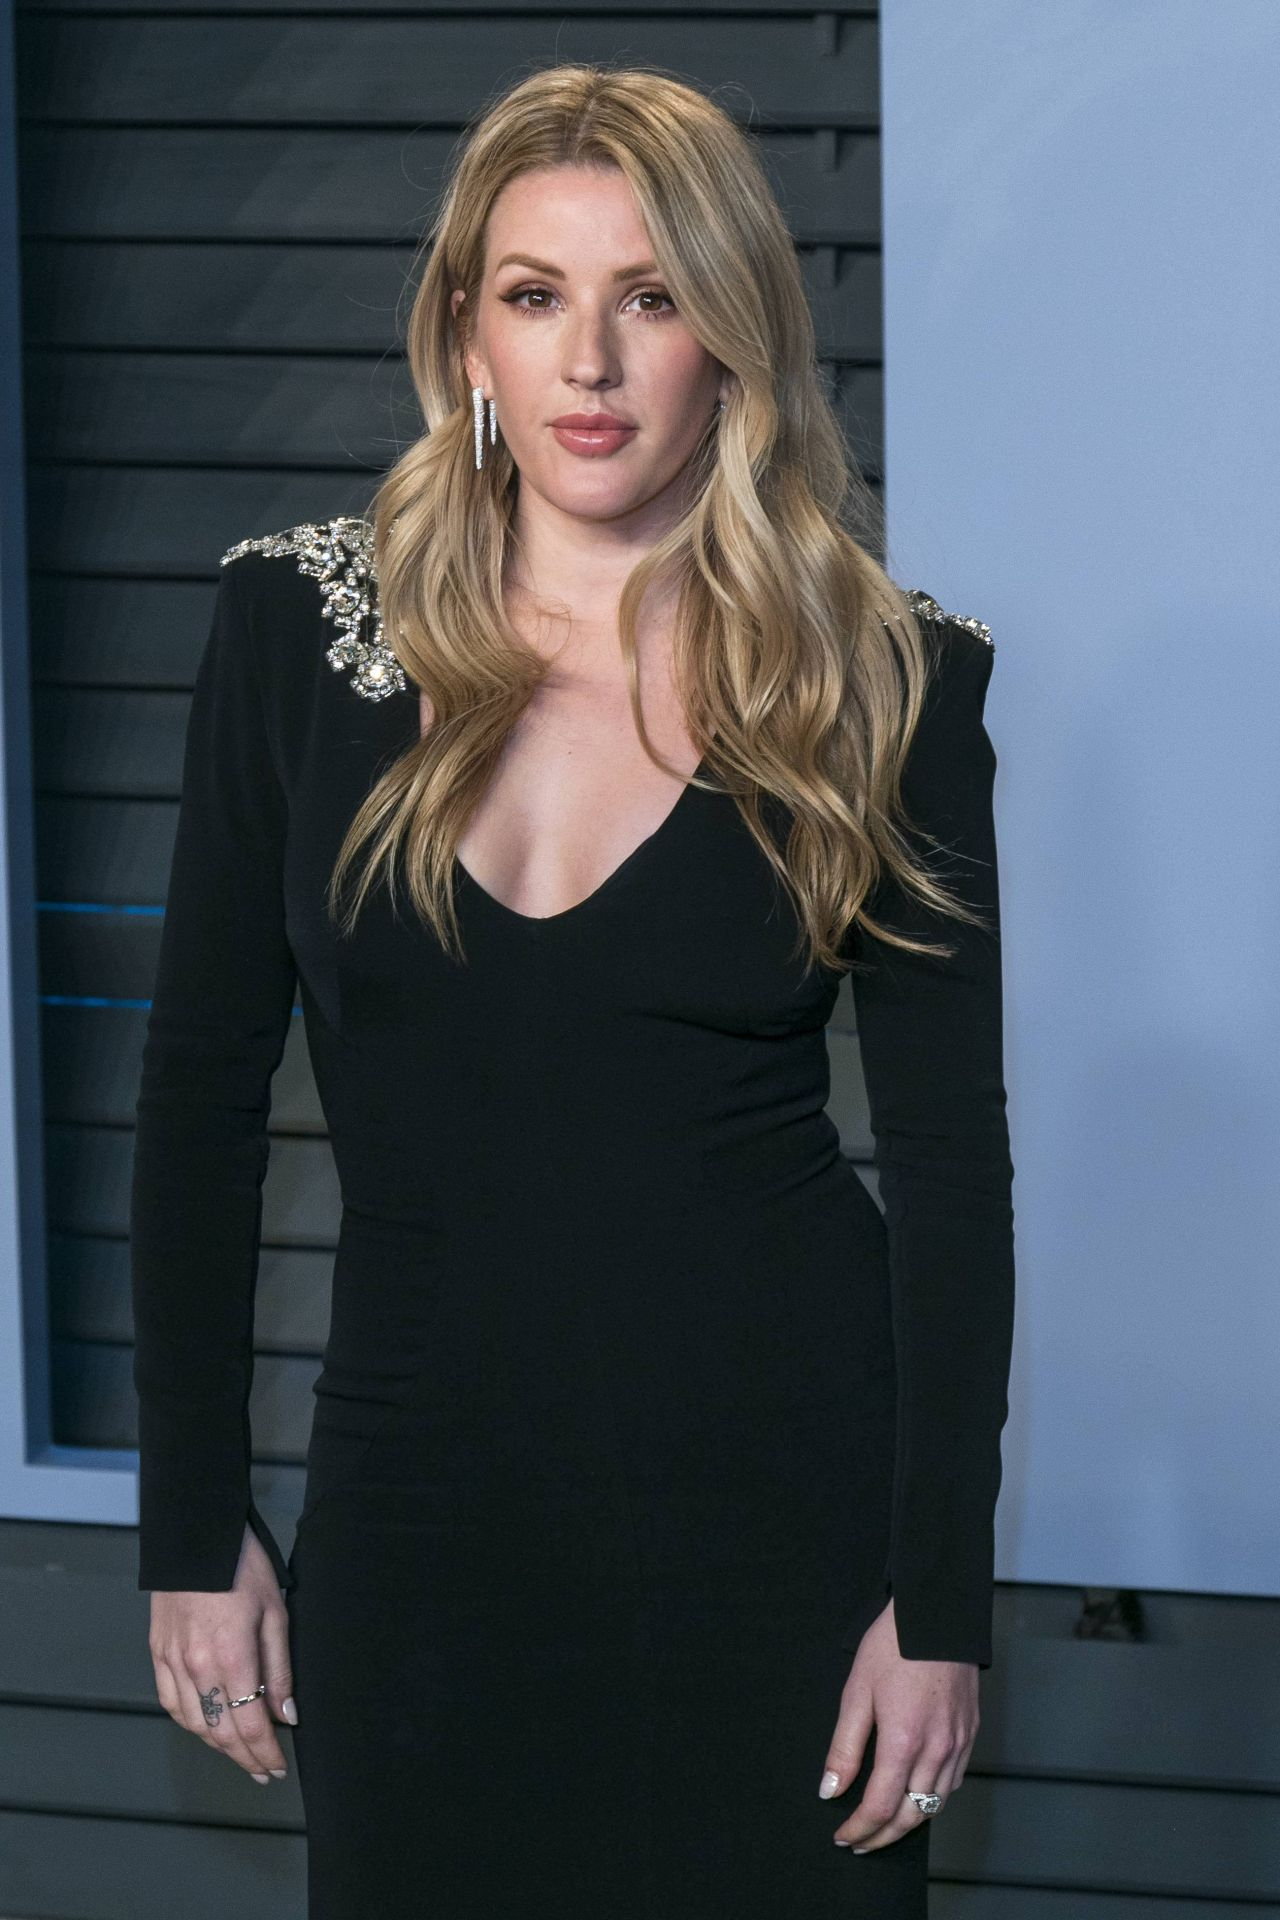 http://celebmafia.com/wp-content/uploads/2018/03/ellie-goulding-2018-vanity-fair-oscar-party-in-beverly-hills-1.jpg